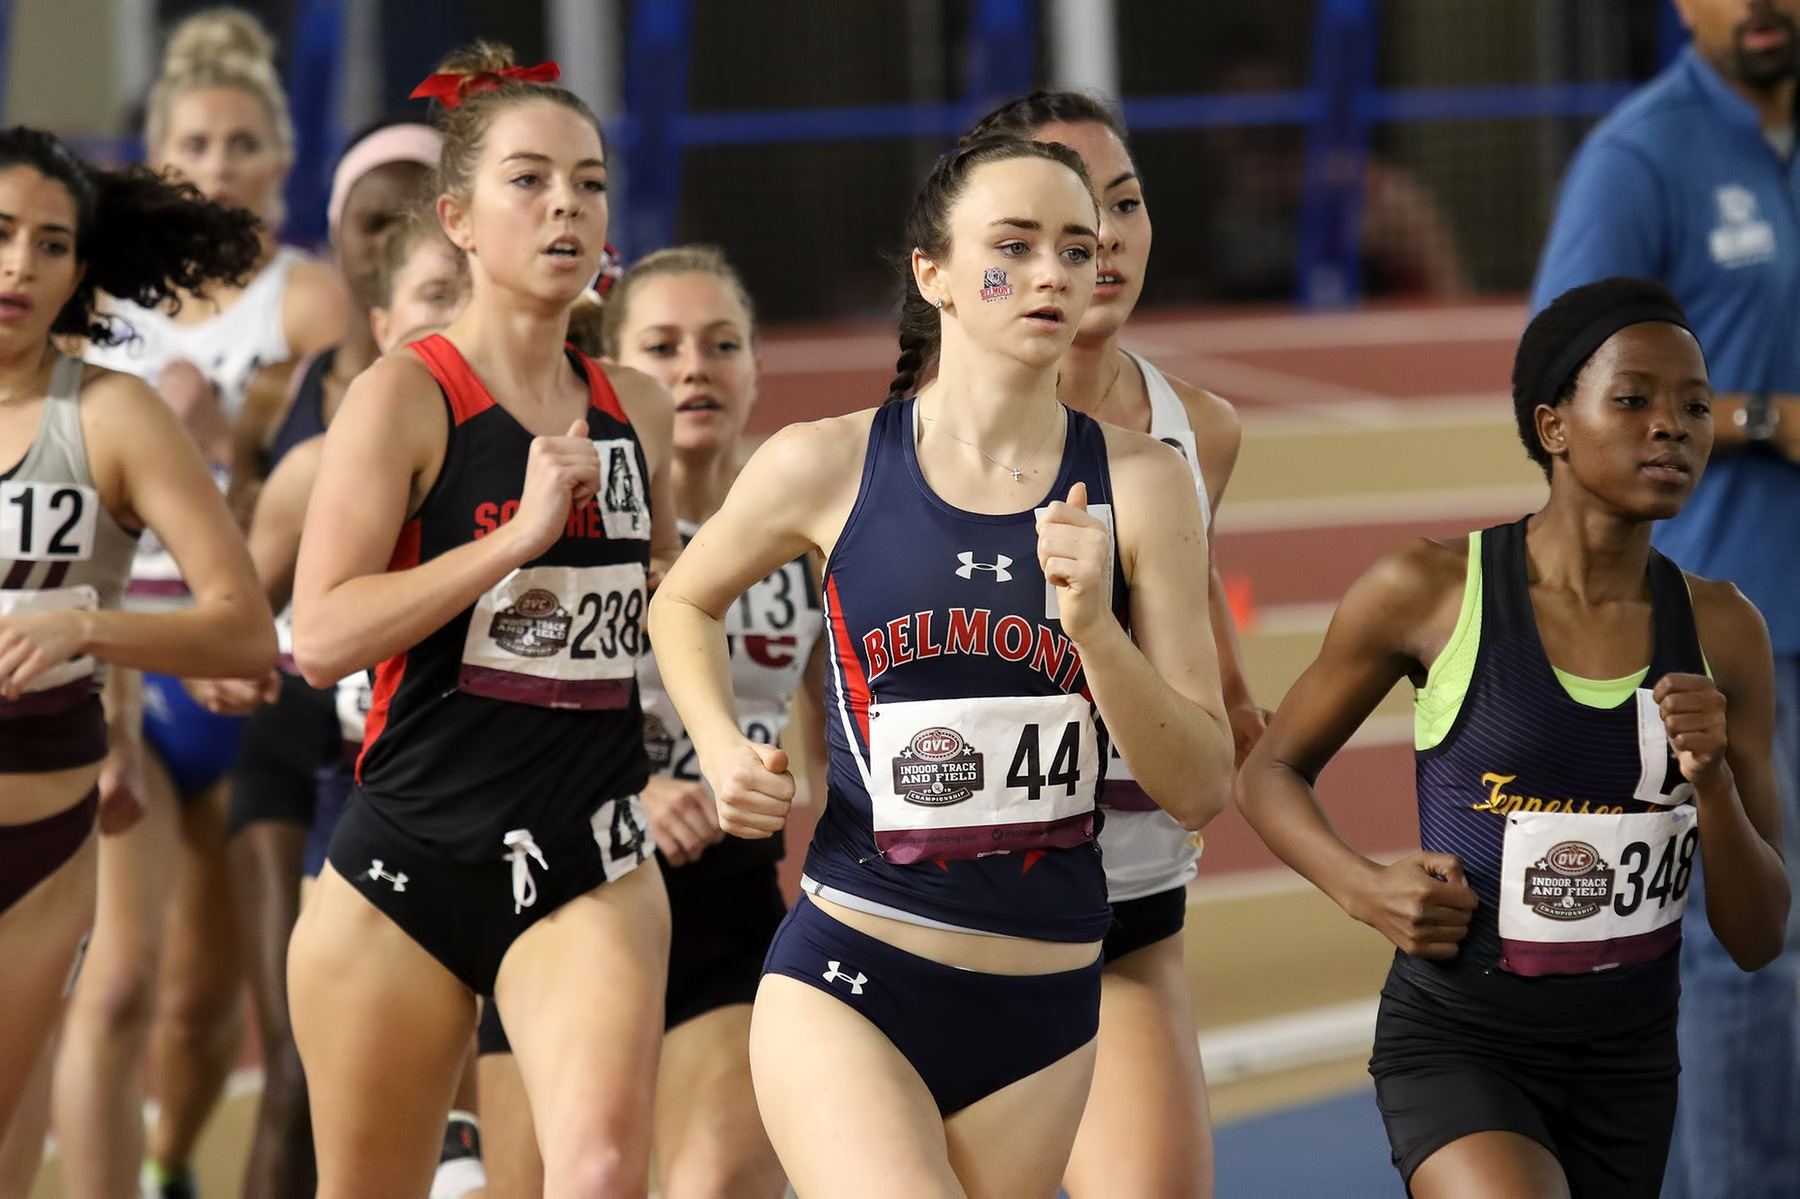 Schardt soars at Raleigh Relays